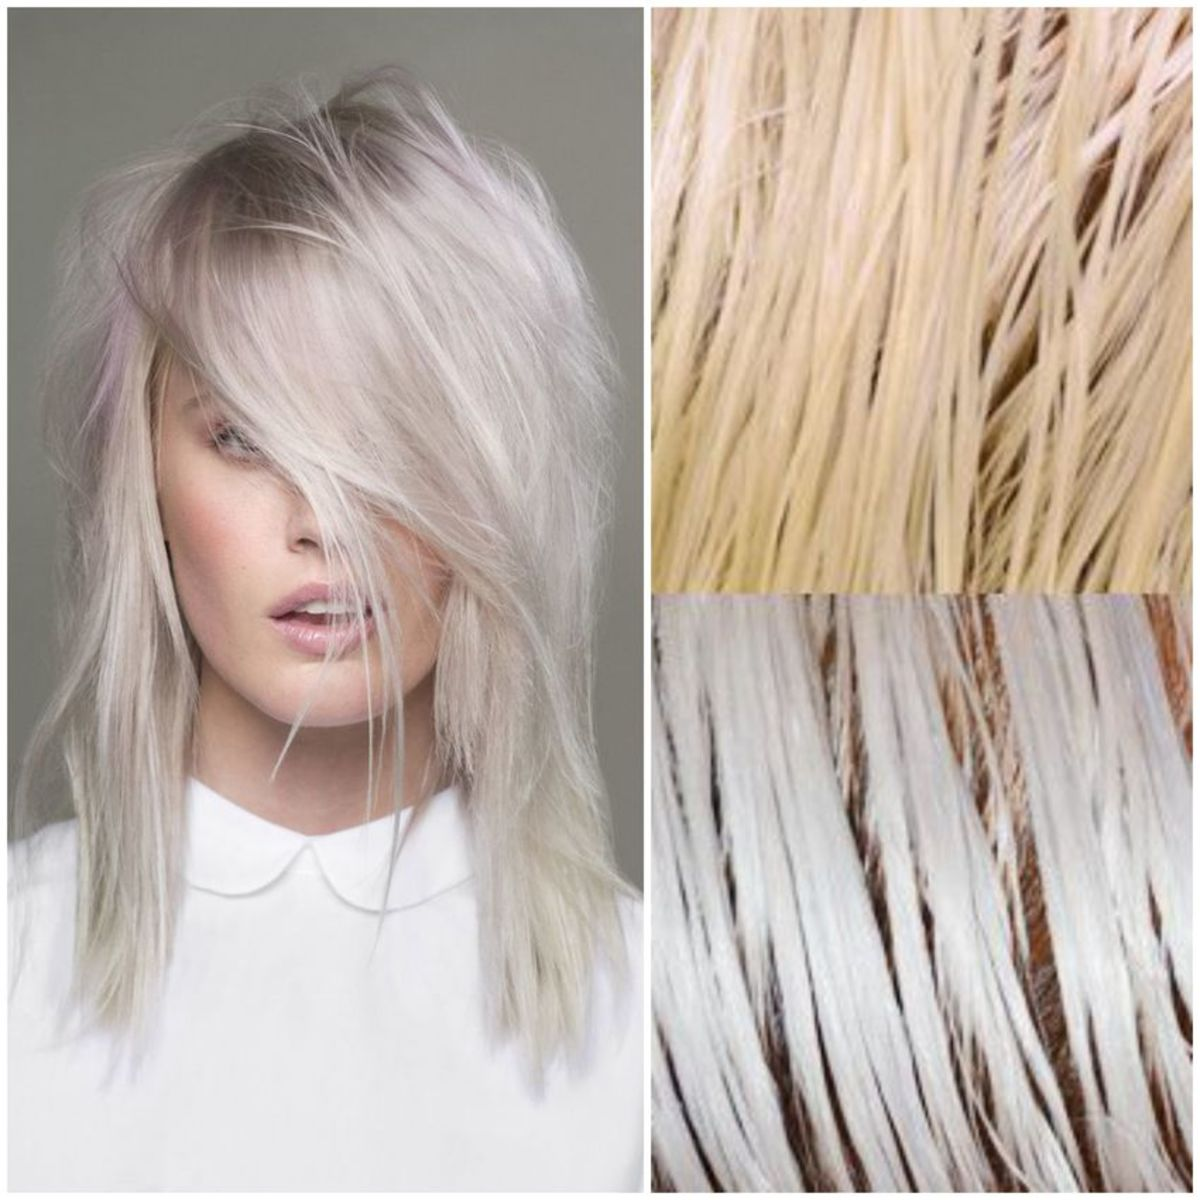 How To Remove Brassy Tones From Bleached Blonde Hair ...